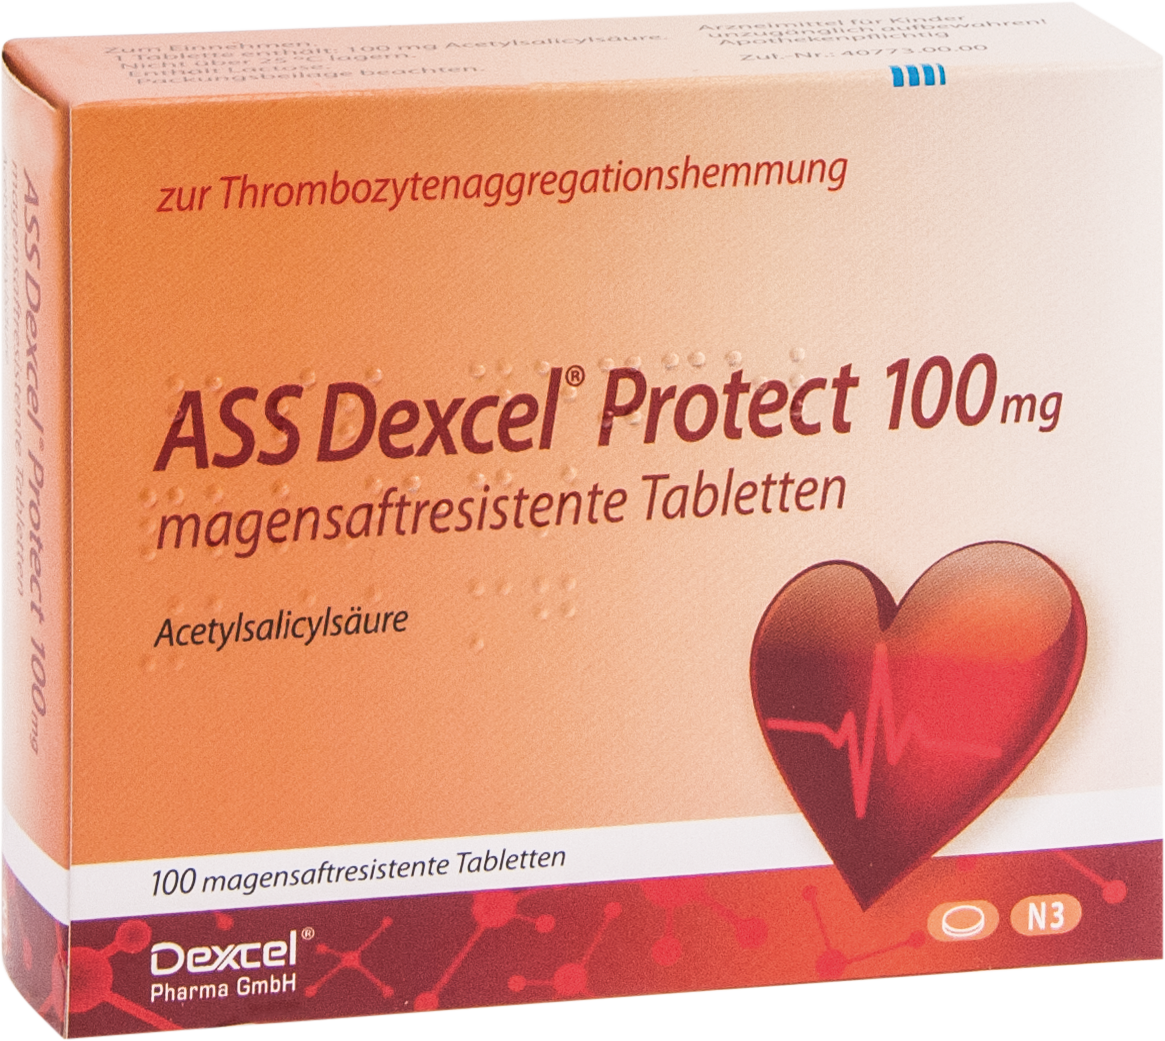 ASS Dexcel Protect 100mg